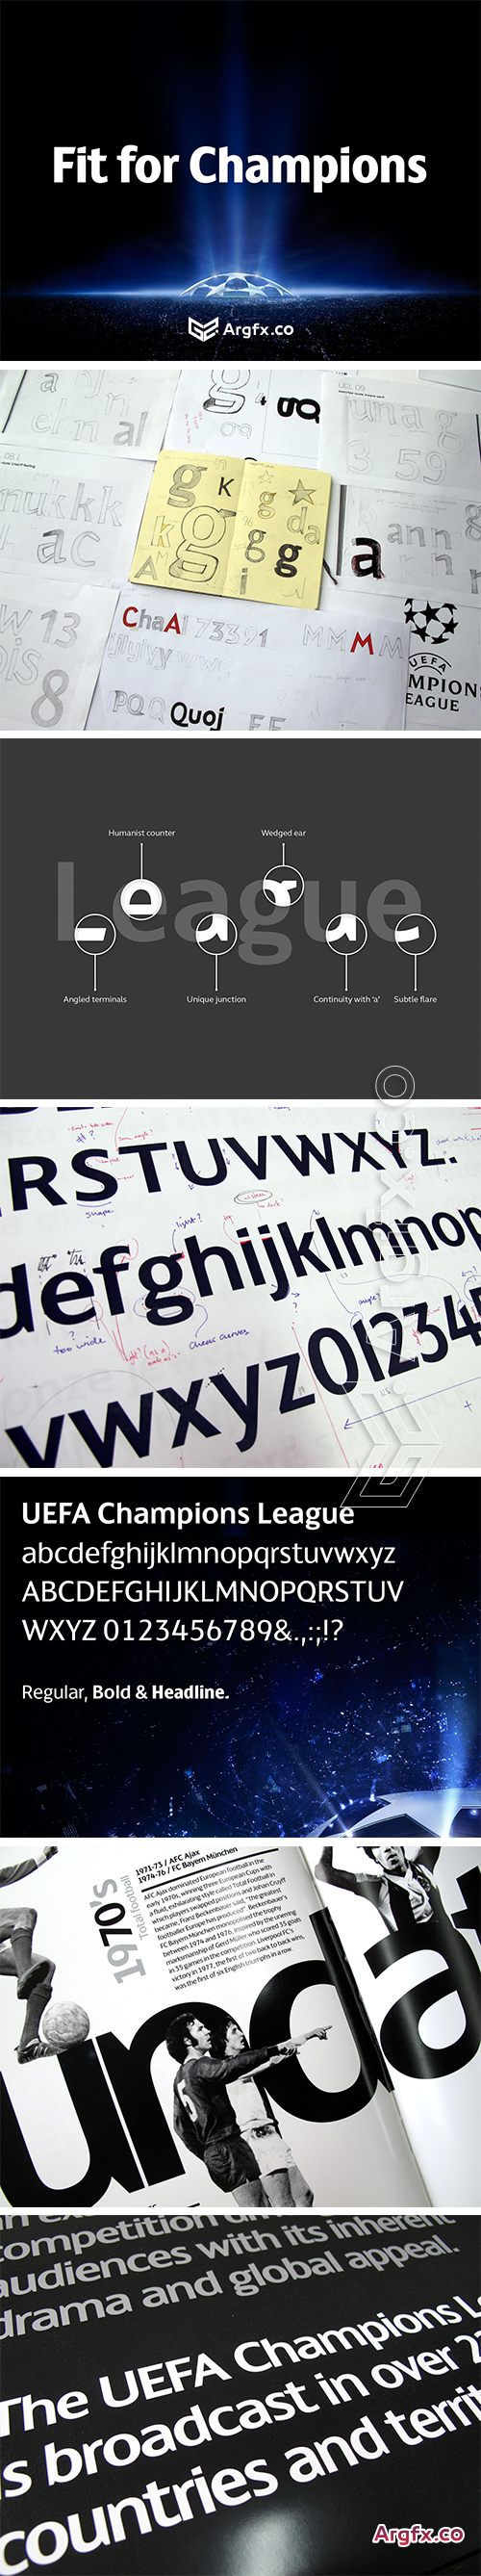 FS Champions - Custom Typeface of UEFA Champions League